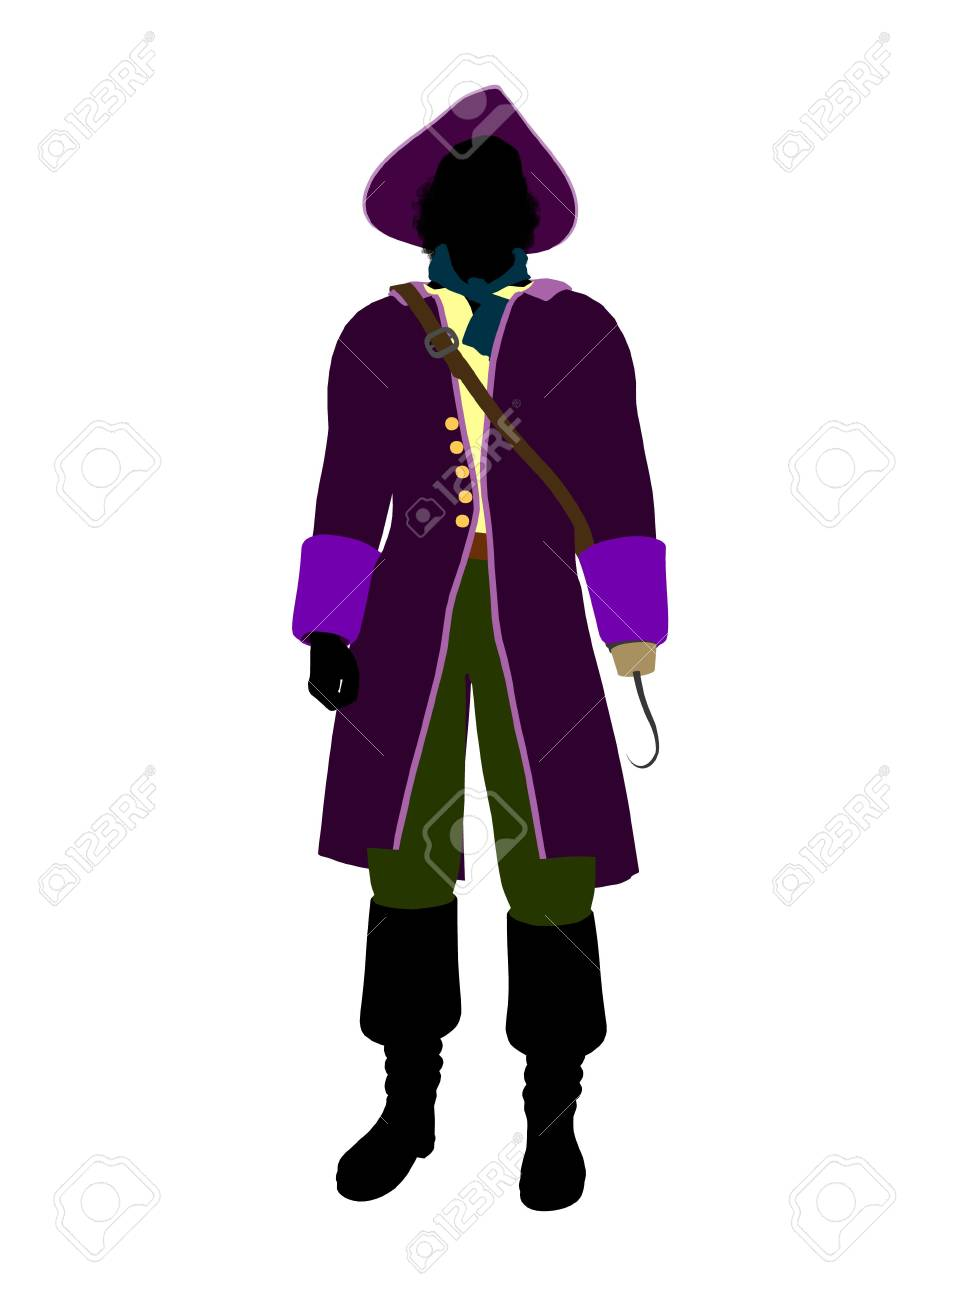 Captain hook illustration silhouette on a white background Stock Photo - 6586962